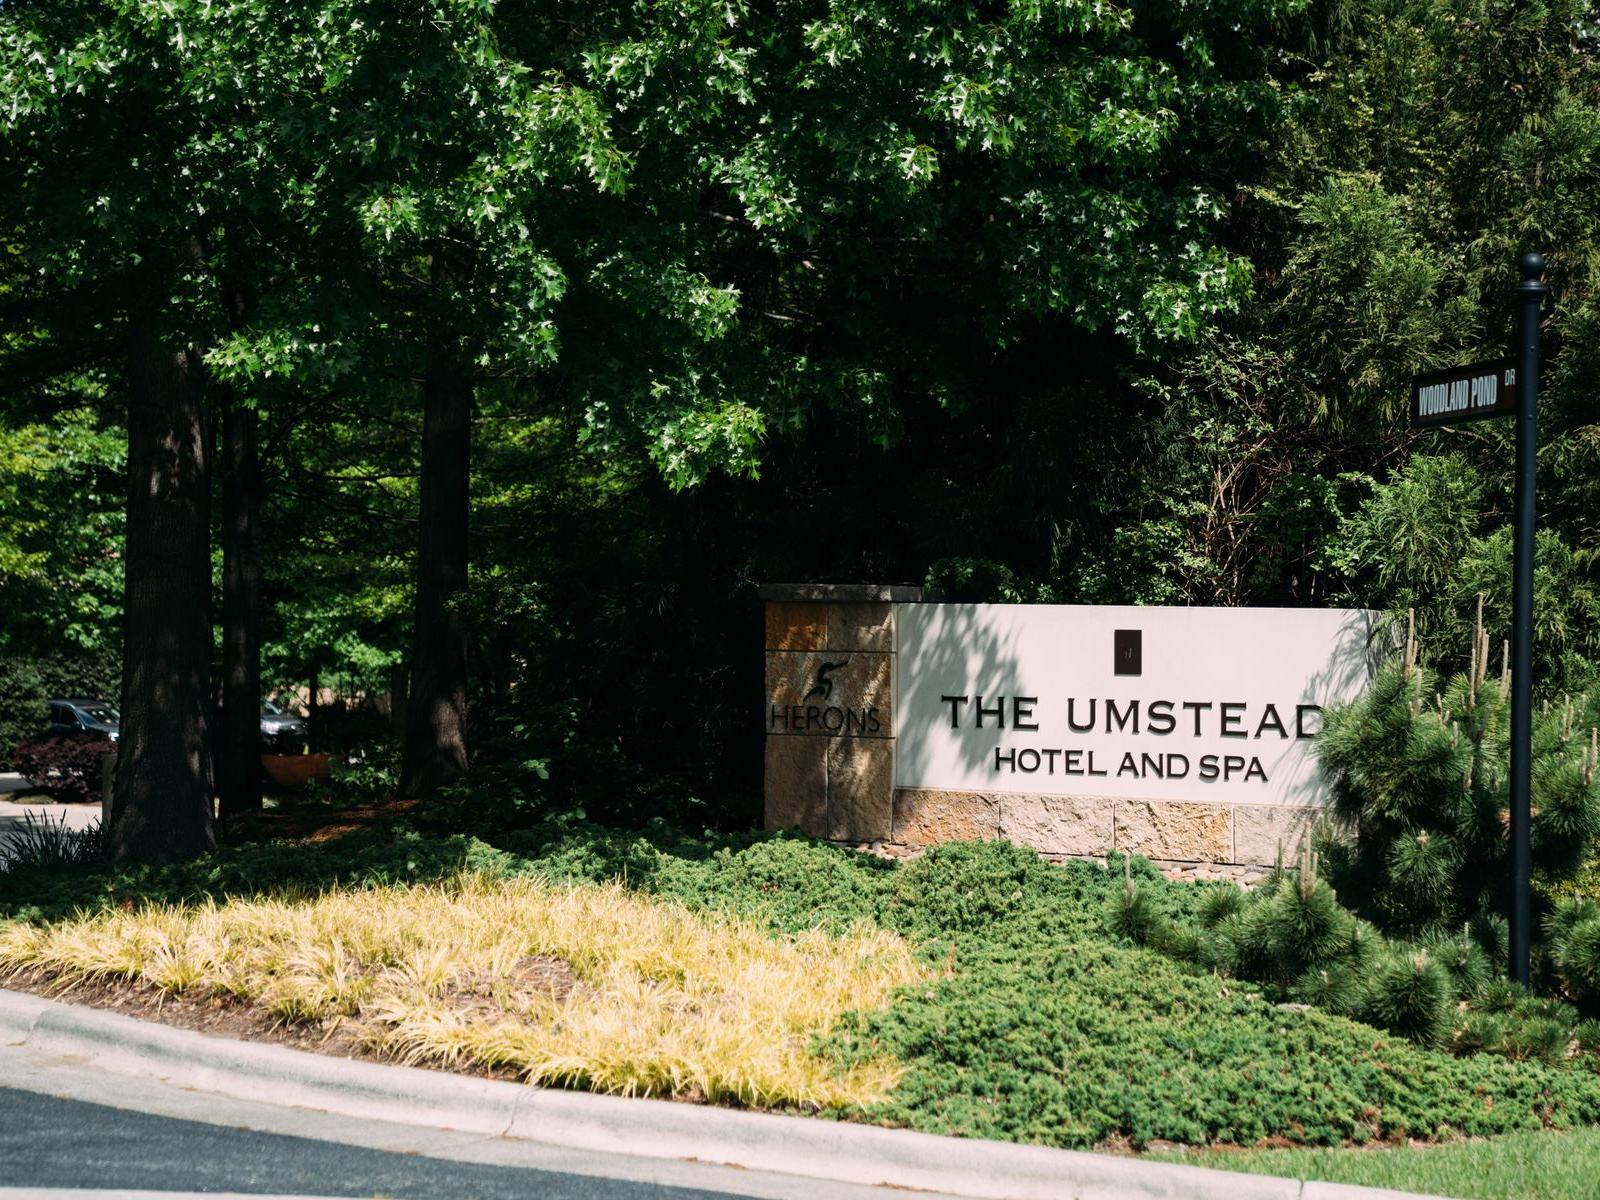 sign that says the umstead hotel and spa